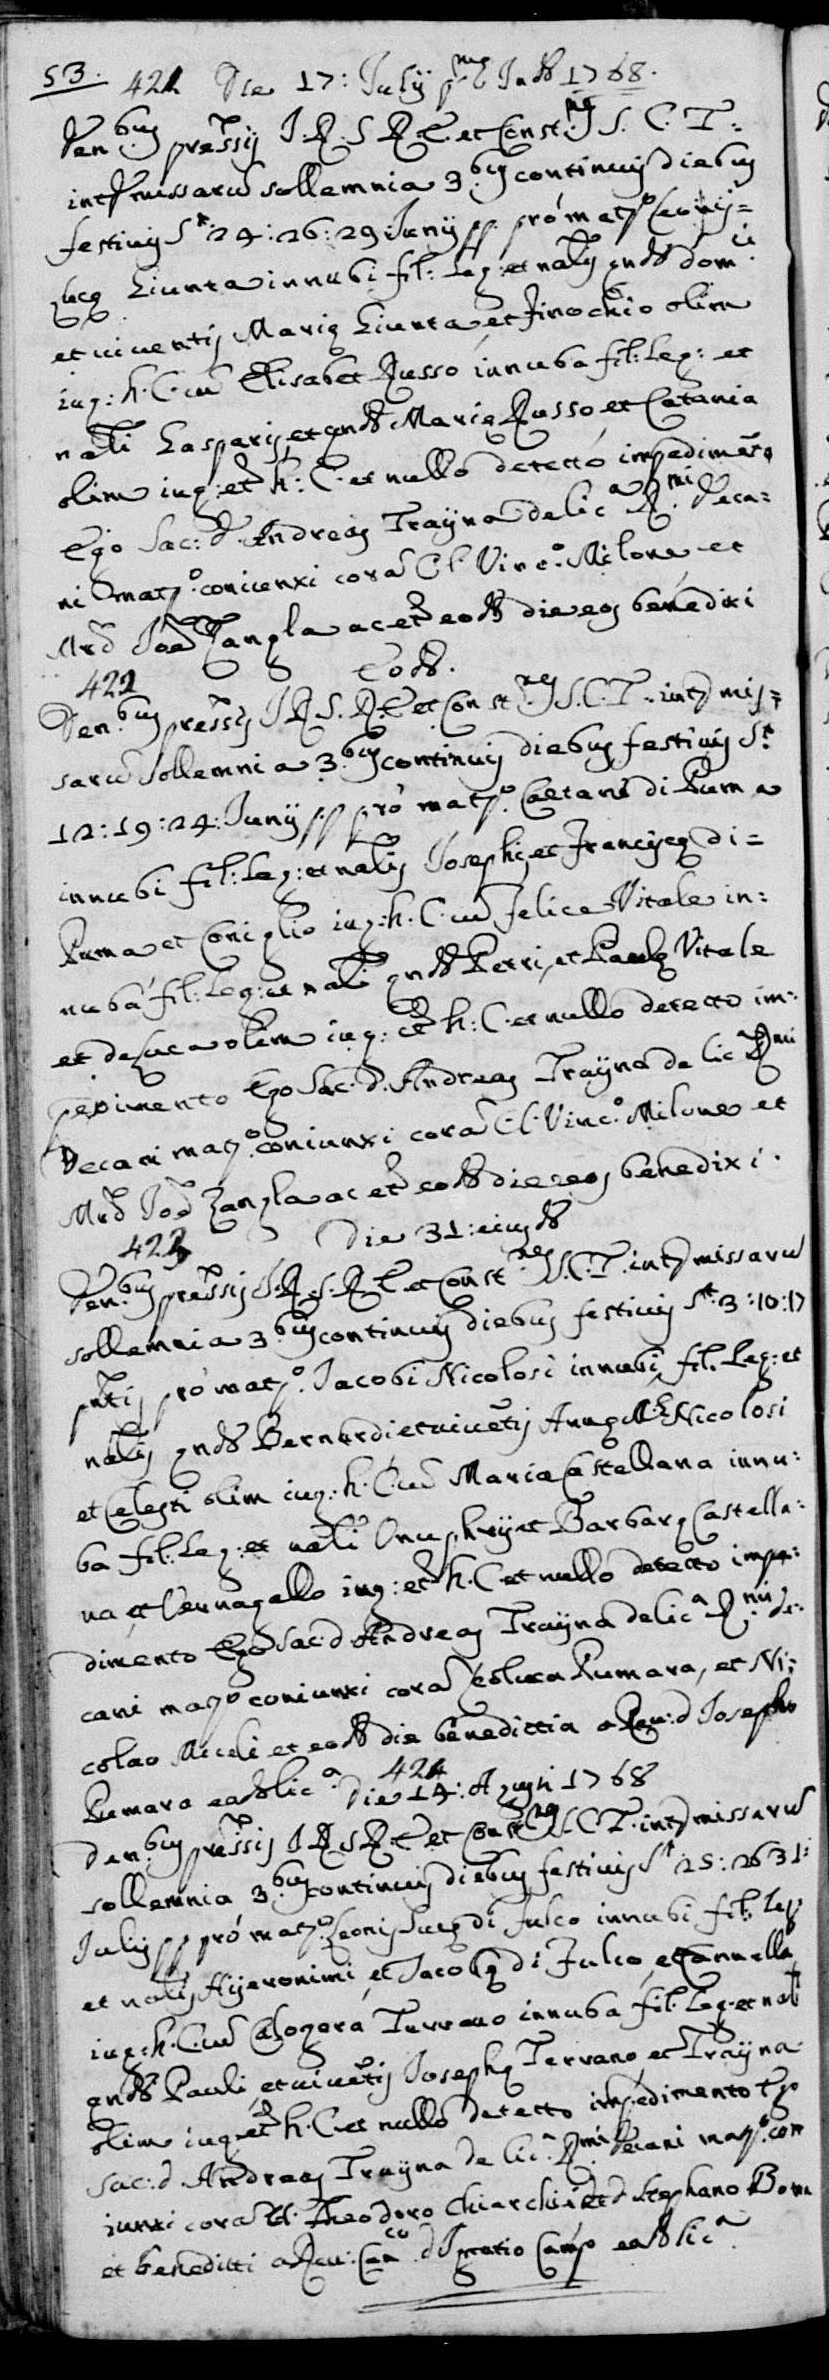 Marriage record of Leoluca DiFulco, 1768.jpg